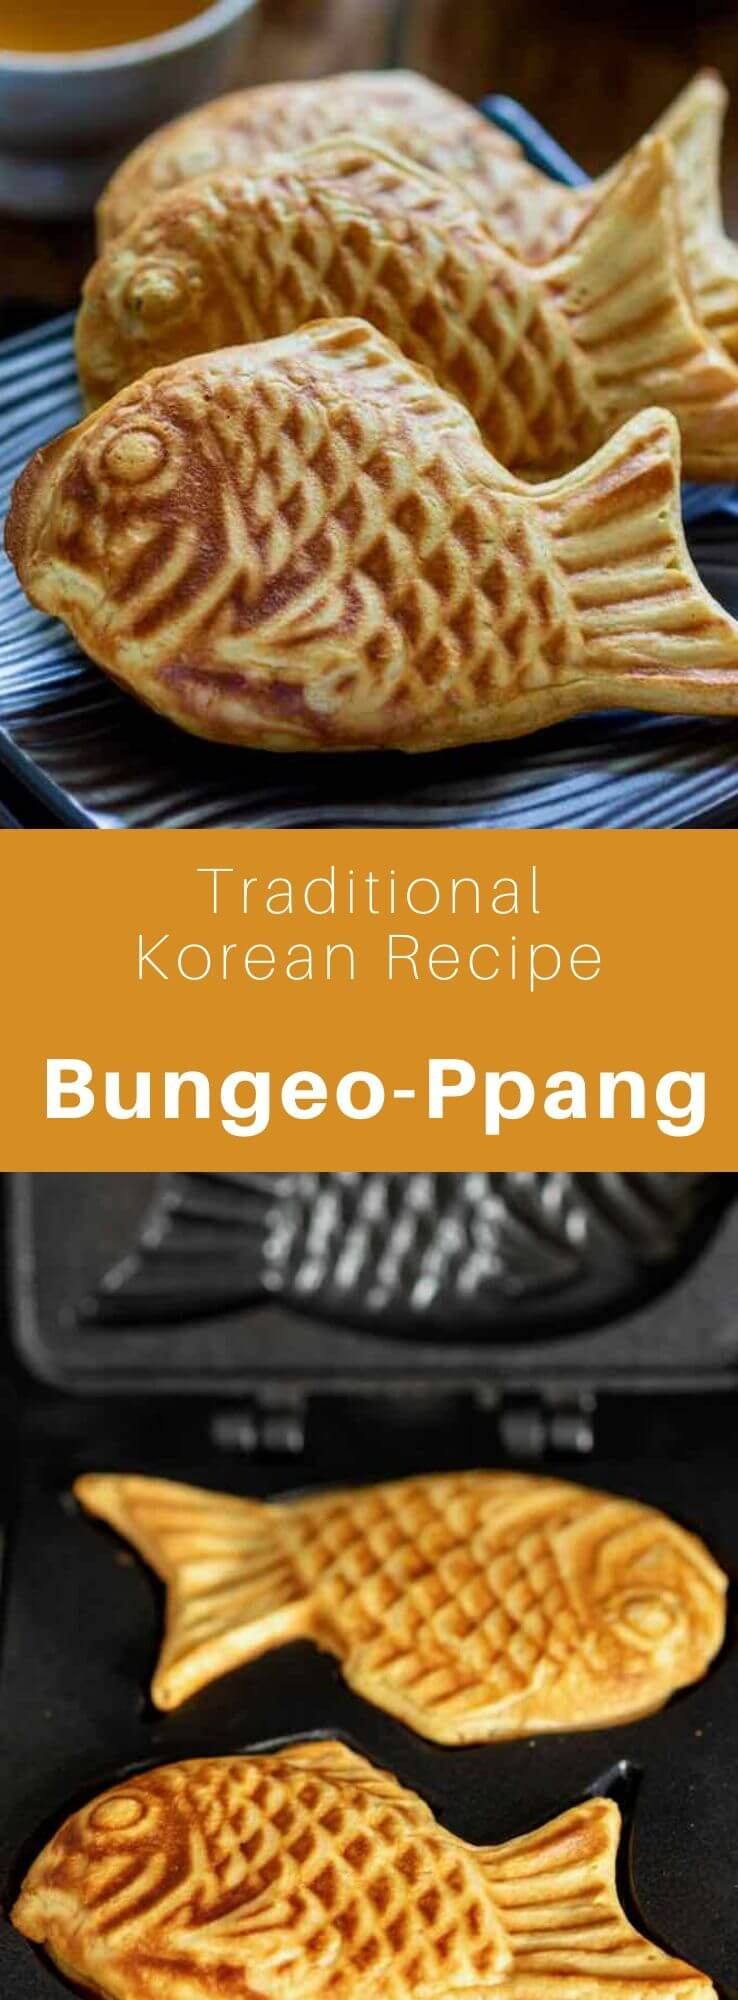 Bungeo-ppang (붕어빵) is a Korean fish-shaped pastry made from batter stuffed with sweetened red bean paste or other ingredients. #KoreanFood #KoreanRecipe #KoreanCuisine #WorldCuisine #196flavors